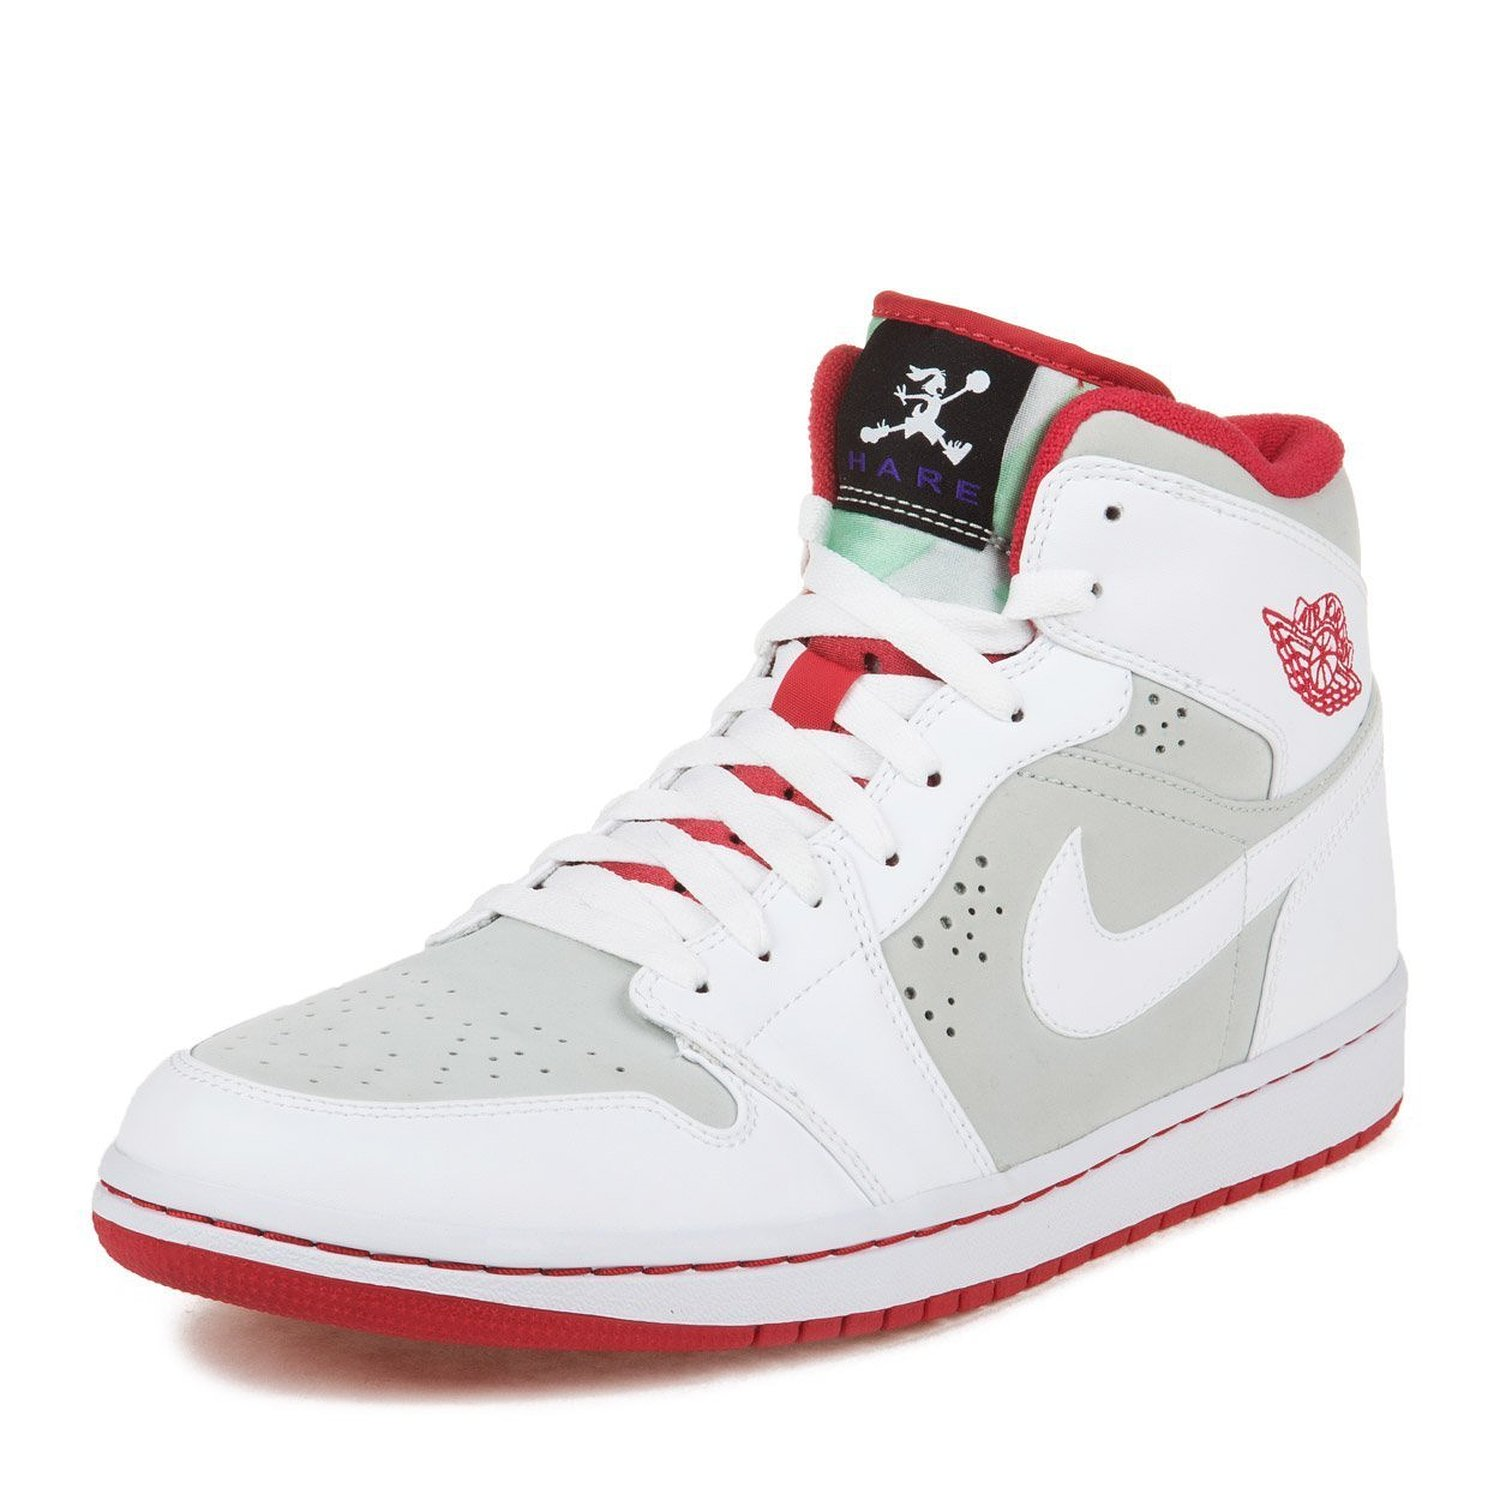 47499b4d028ac8 Nike Mens Air Jordan 1 Retro Hare Jordan Light Silver White-True Red Leather